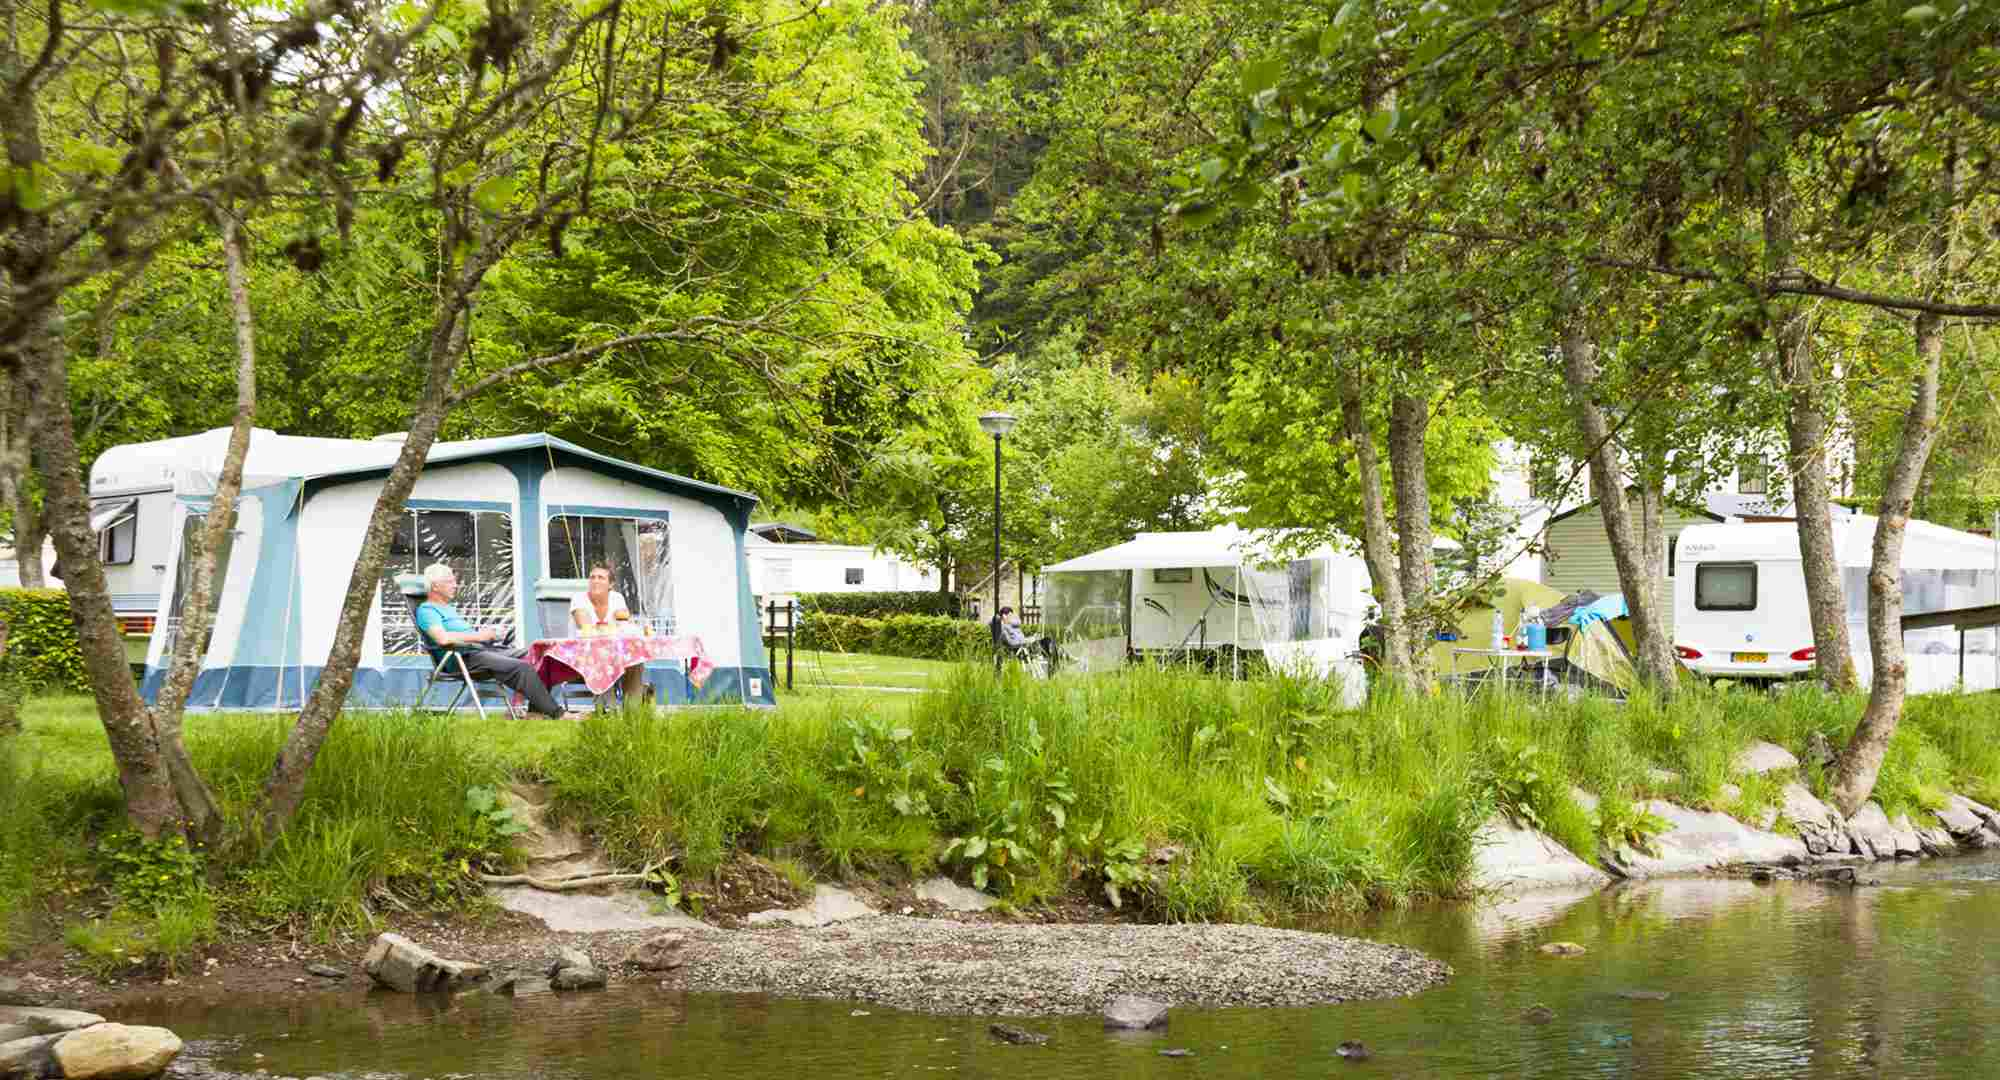 Charme Camping Nederland Met Zwembad Charmecamping Luxemburg Val D Or Camping Val D Or